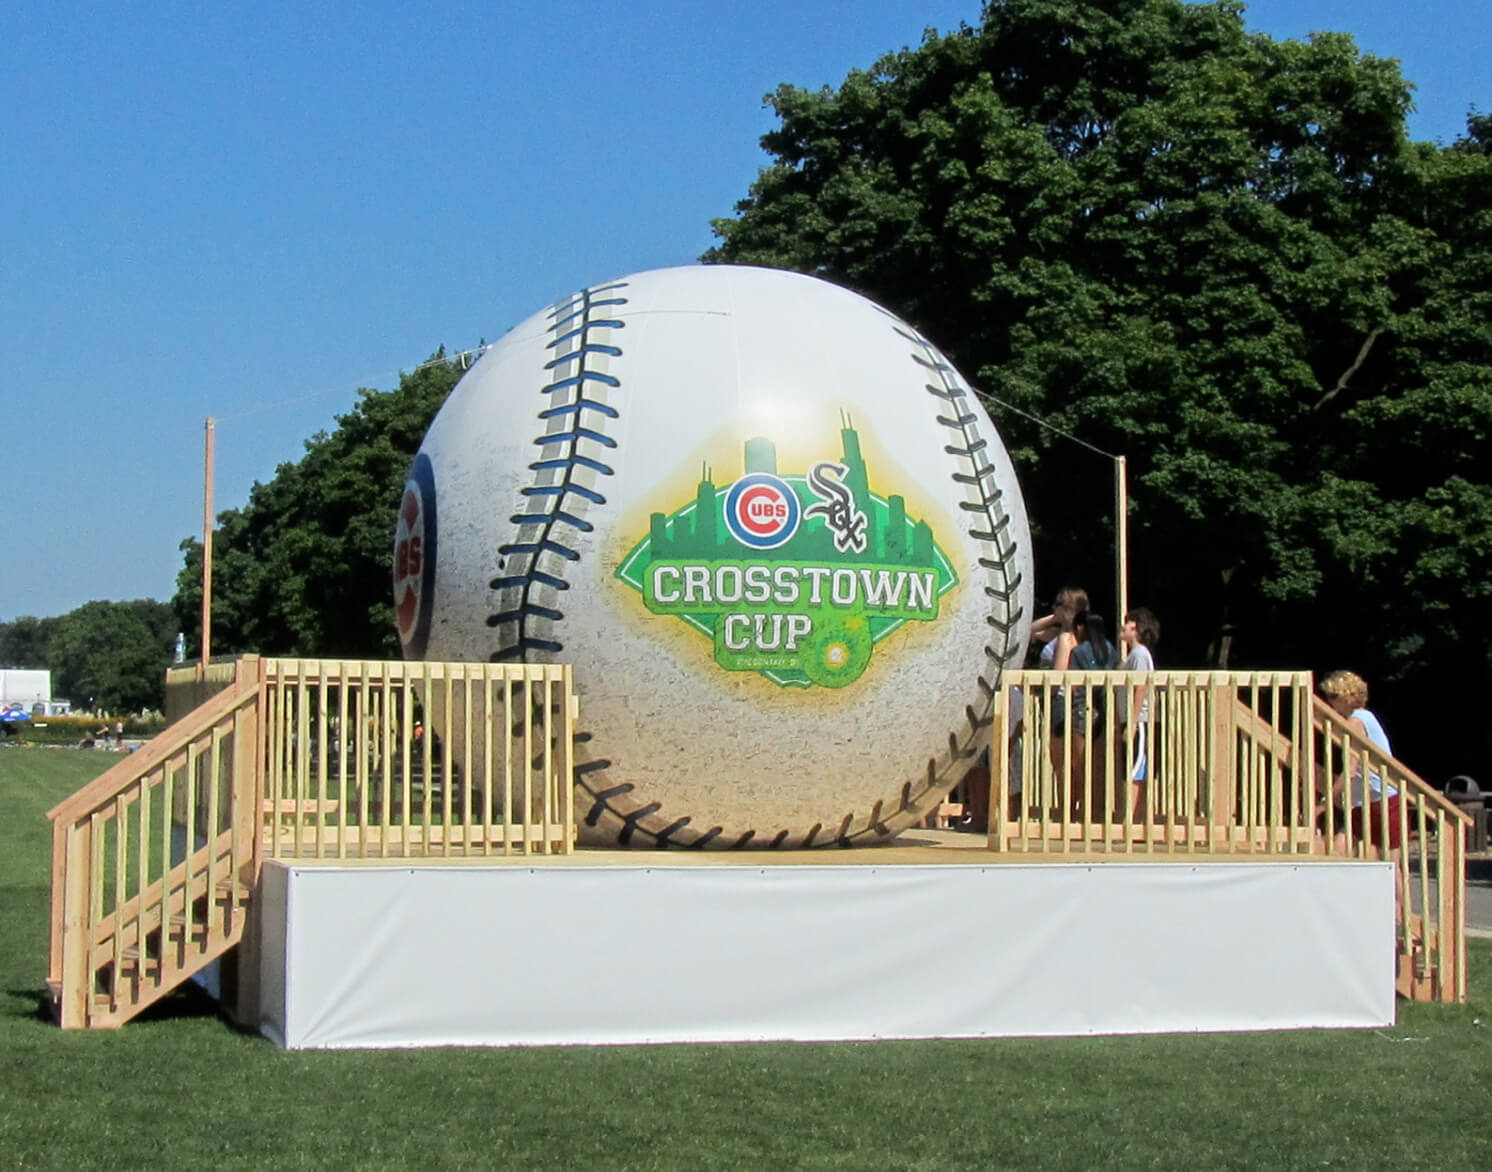 golin bp crosstown cup ramp image